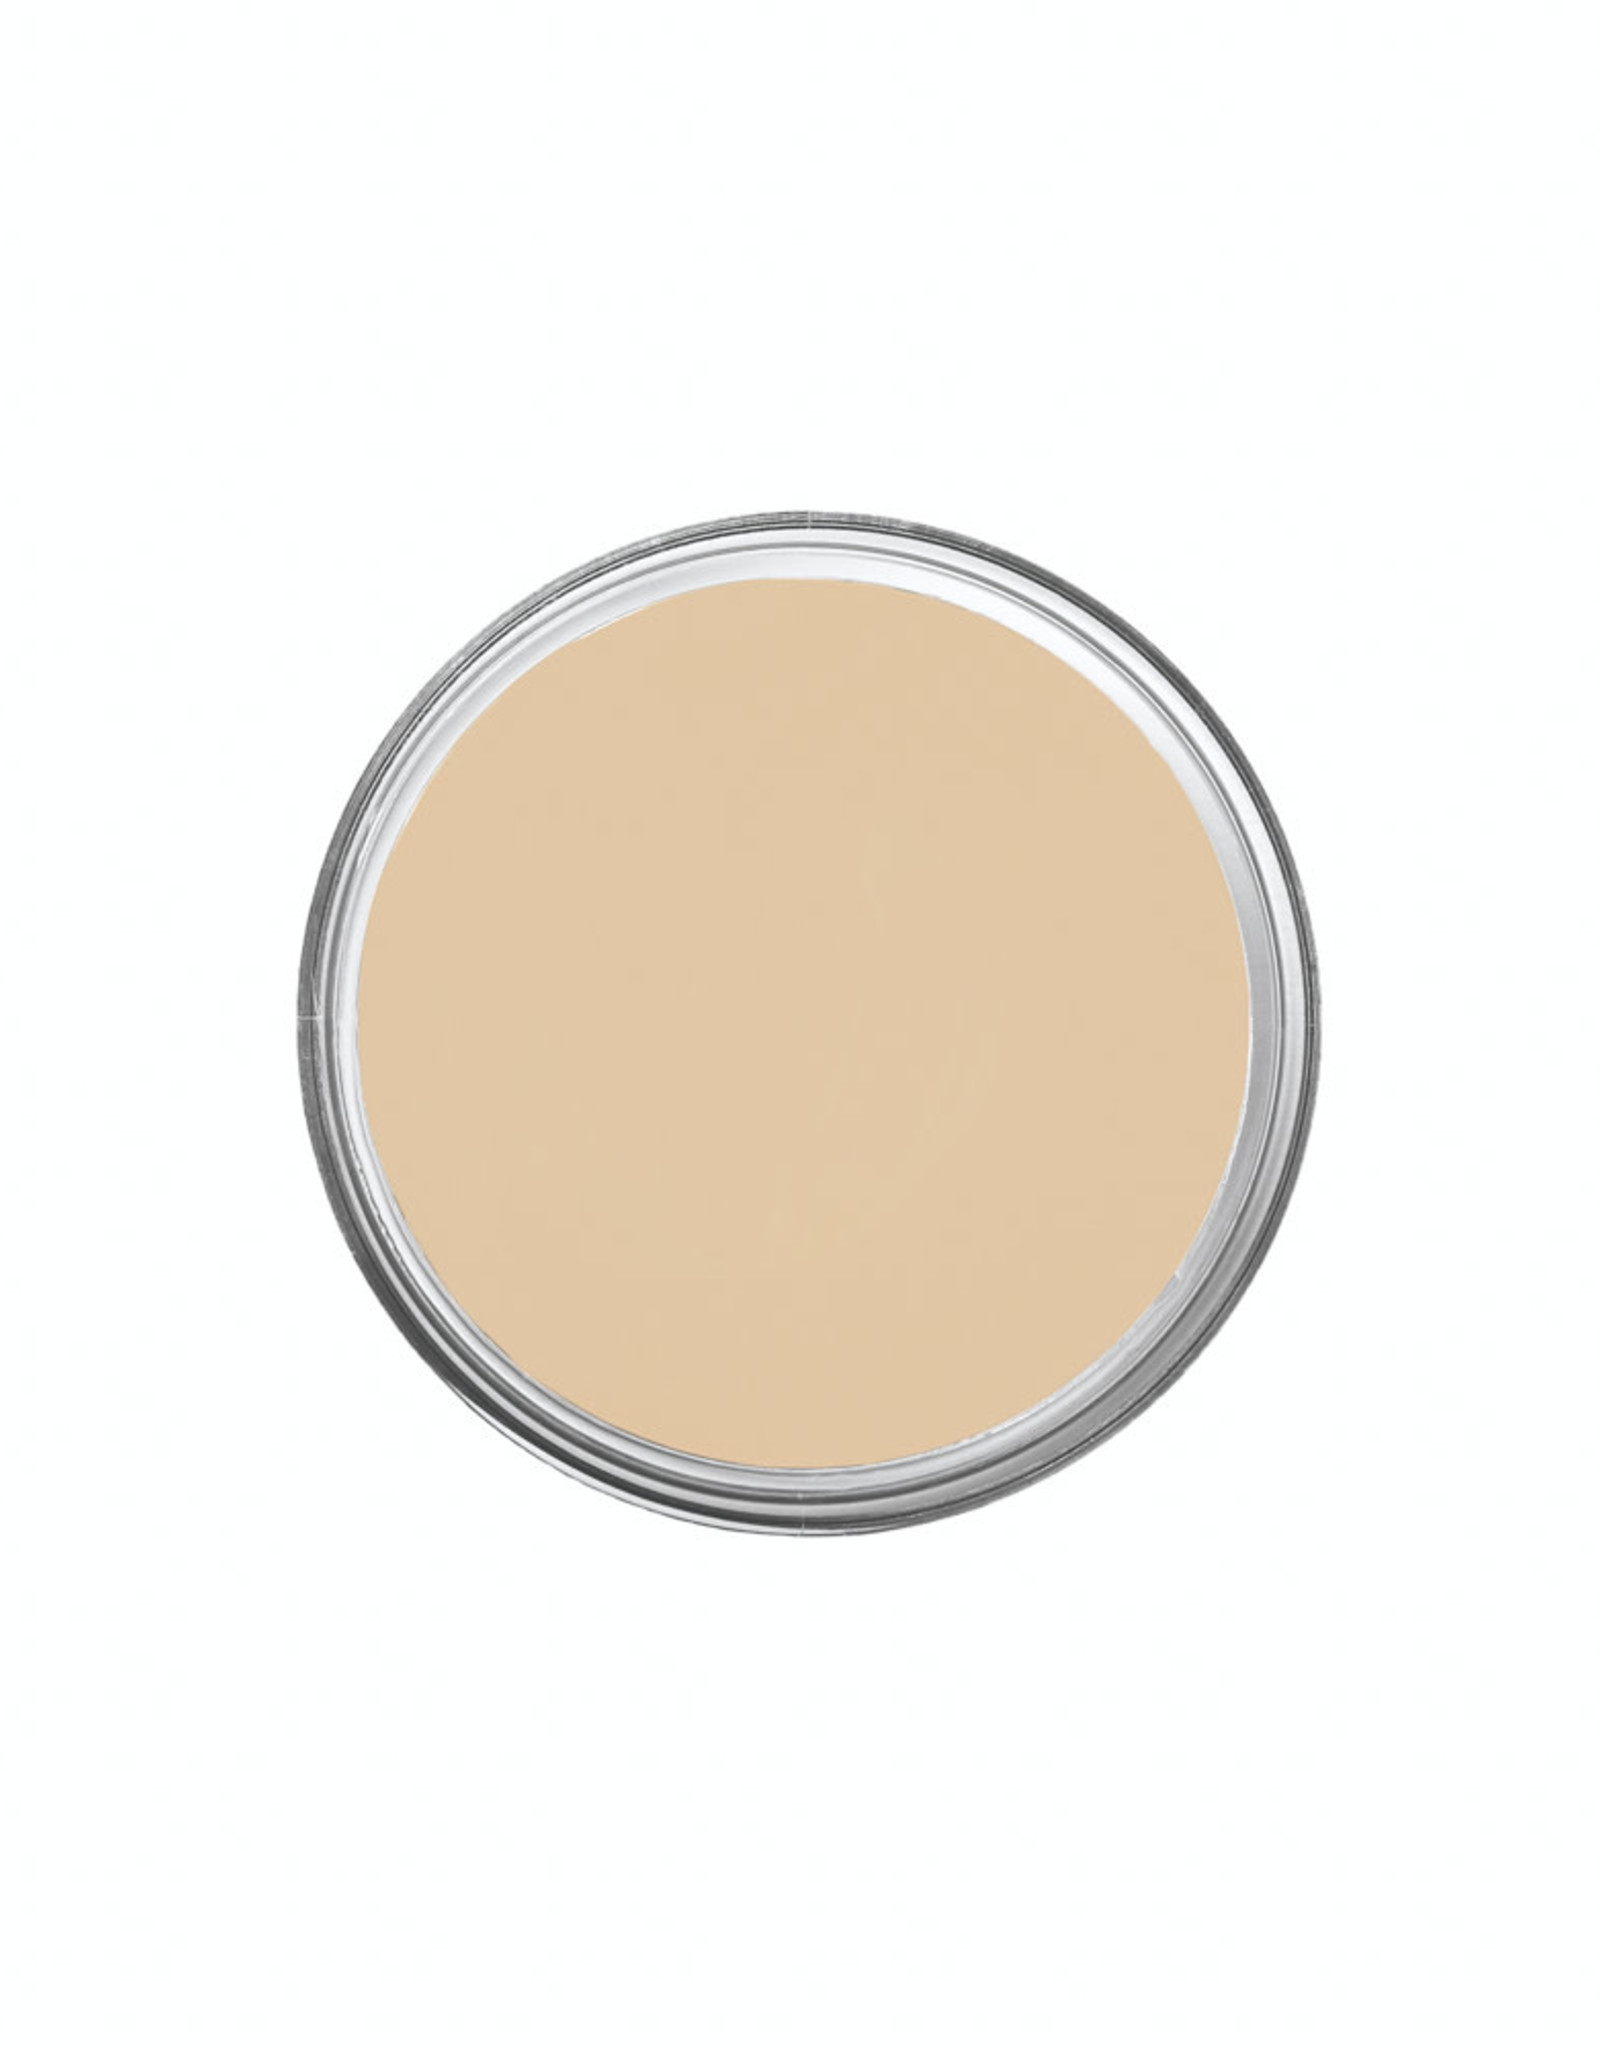 Ben Nye FOUNDATION-MATTE HD,PALE HONEY, .5 OZ